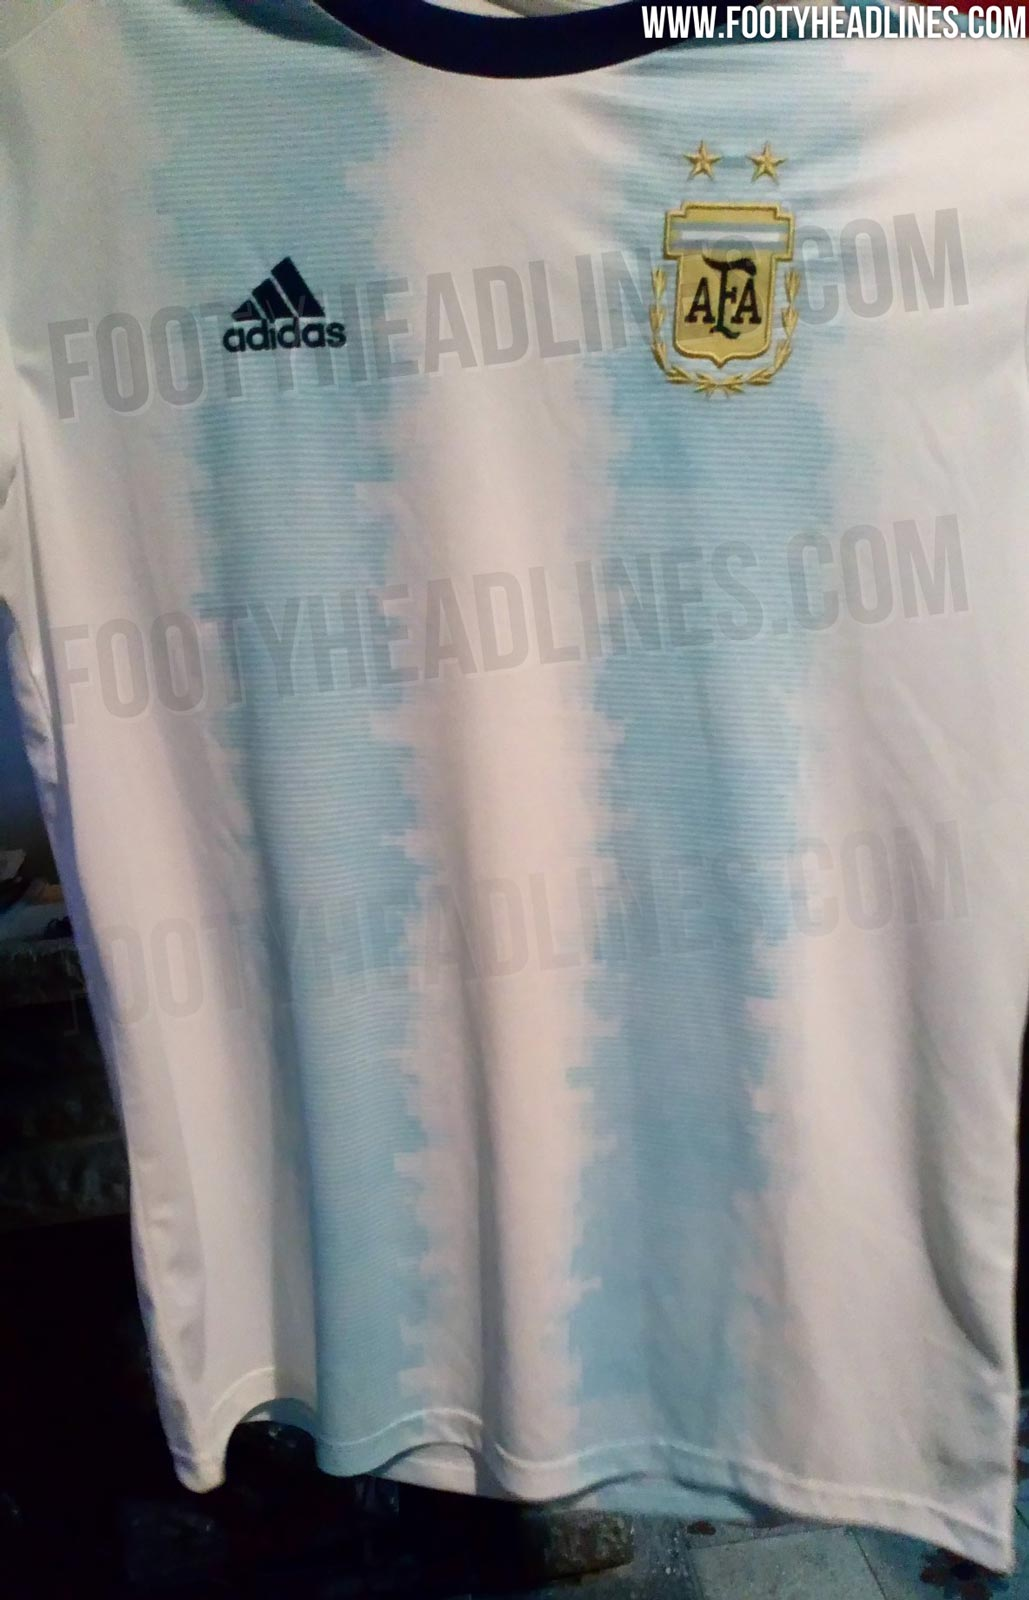 e2c2f89e6e7 ... were the decade with the possible largest changes to football kit  designs